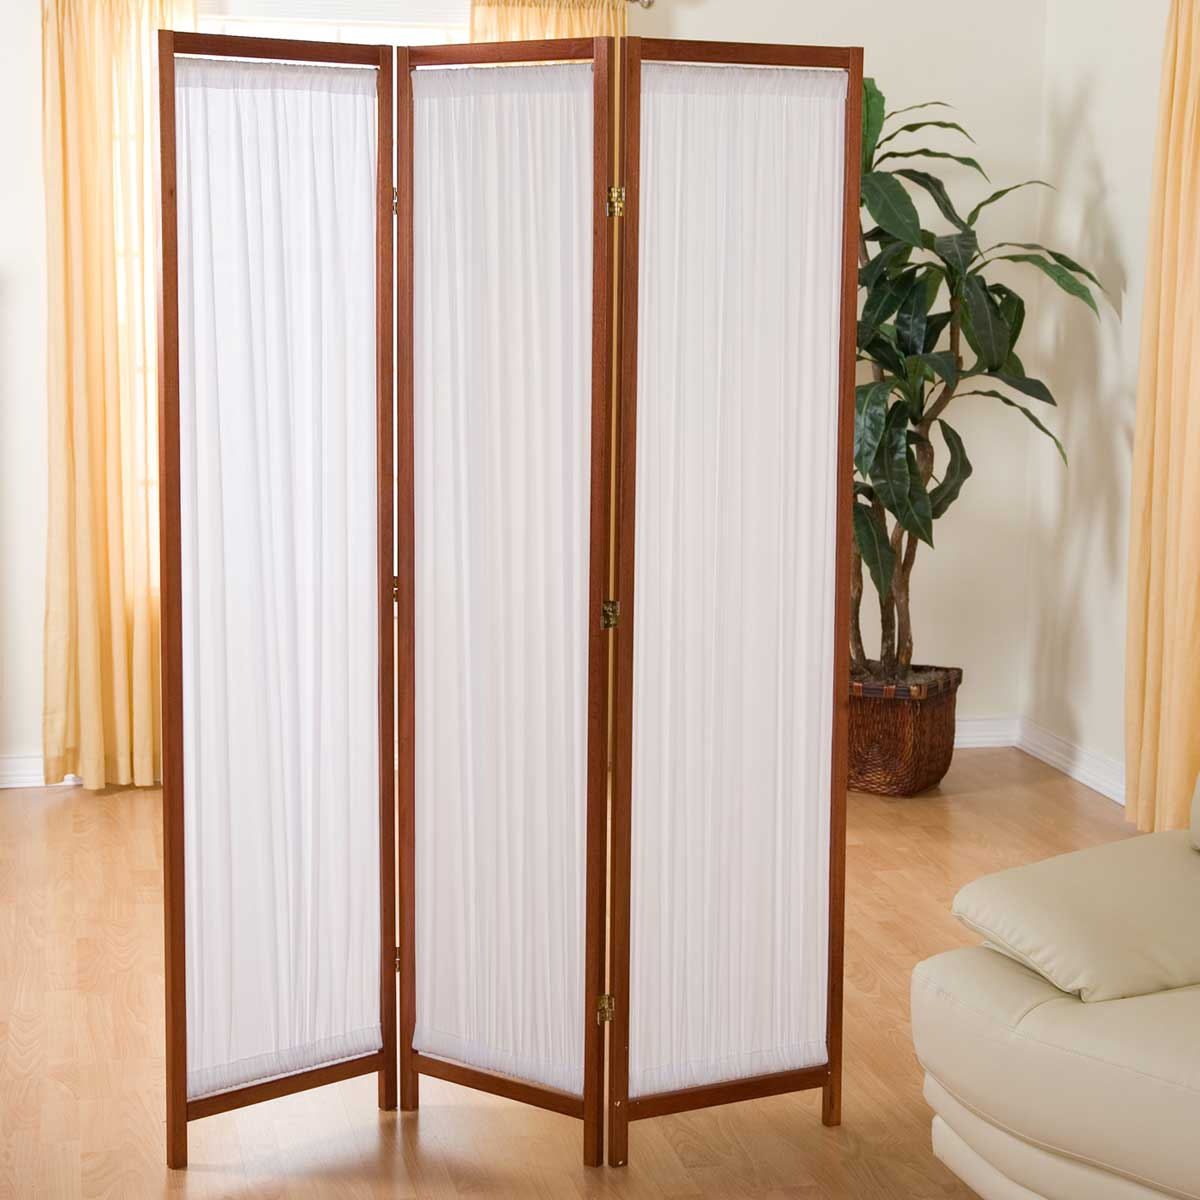 foldable simple wood decorative room divider